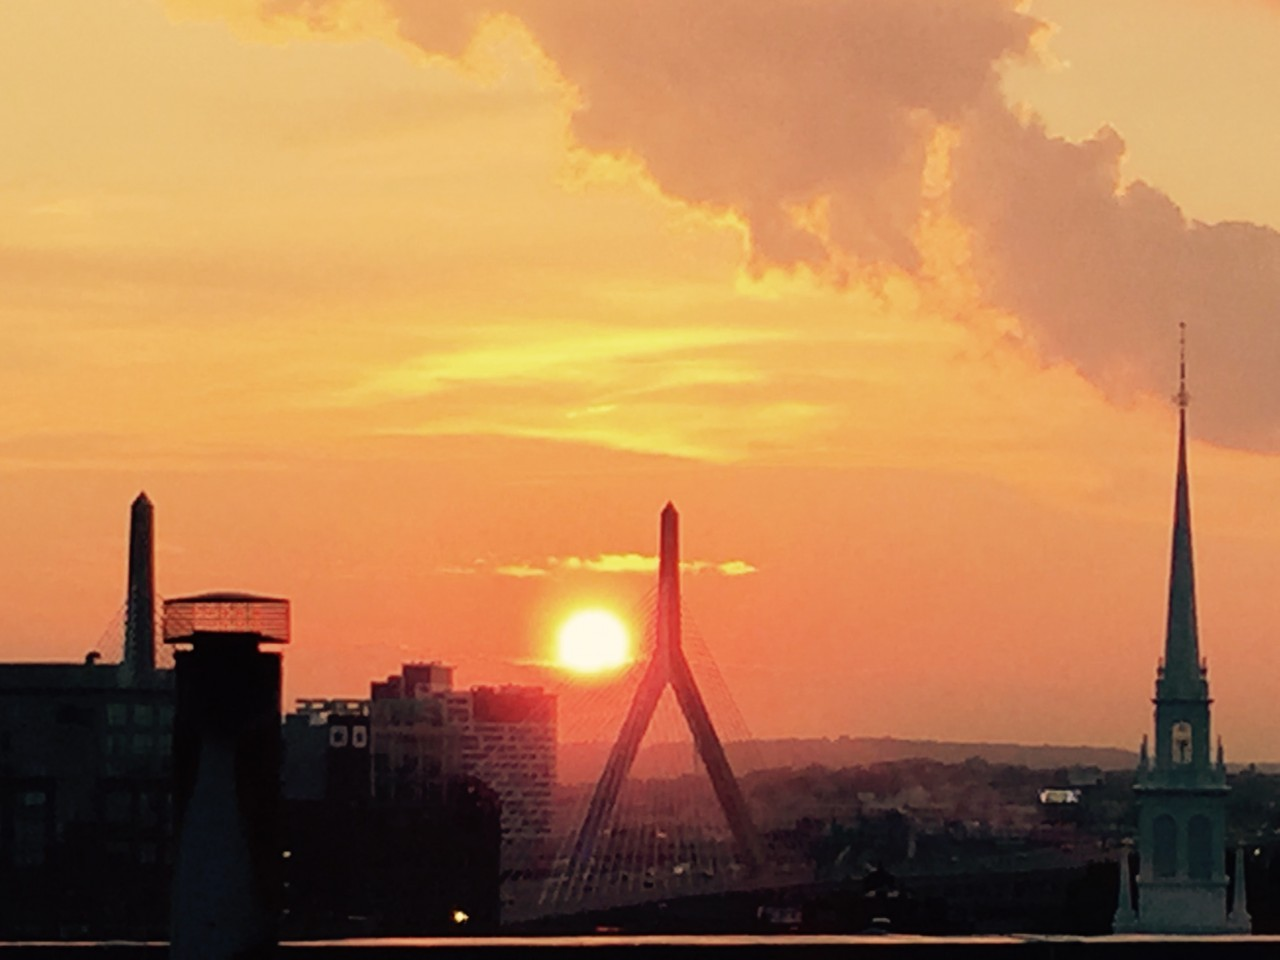 This Flashback Friday takes us back to exactly one year ago, where Rita Pagliuca captured this golden summer sunset over the North End looking toward the Zakim Bridge.